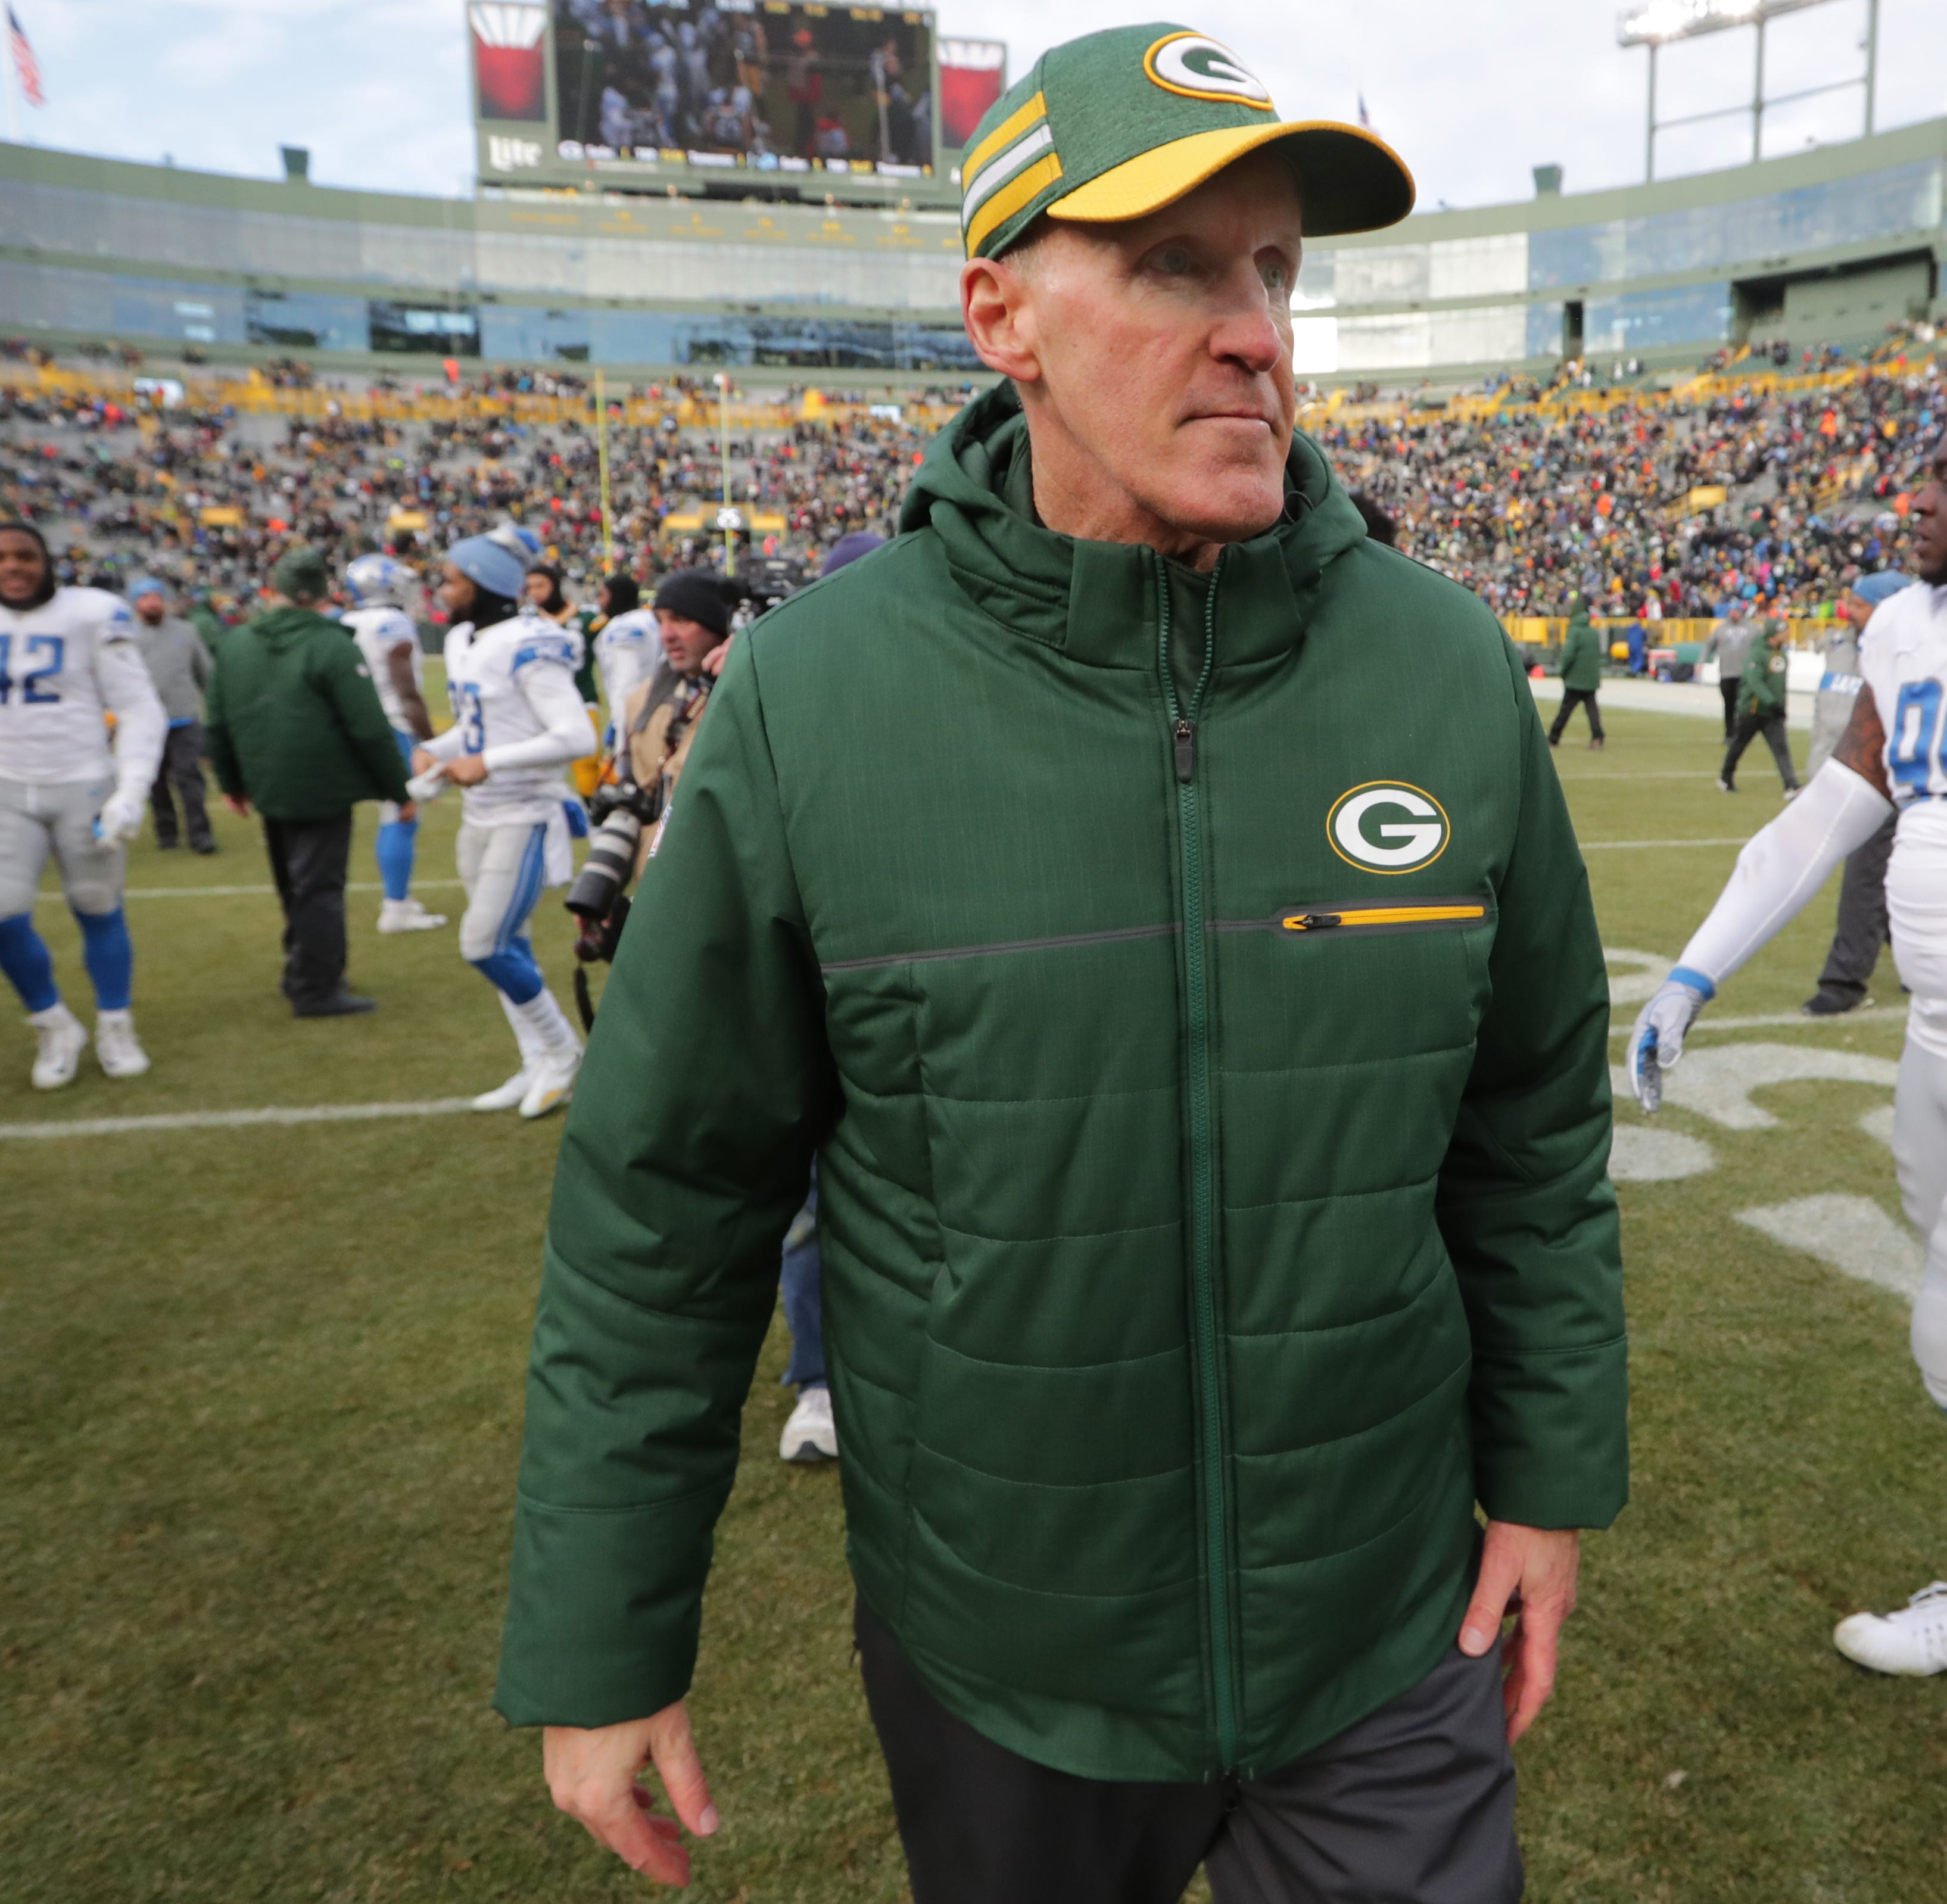 Green Bay Packers coaching candidates come from varied backgrounds